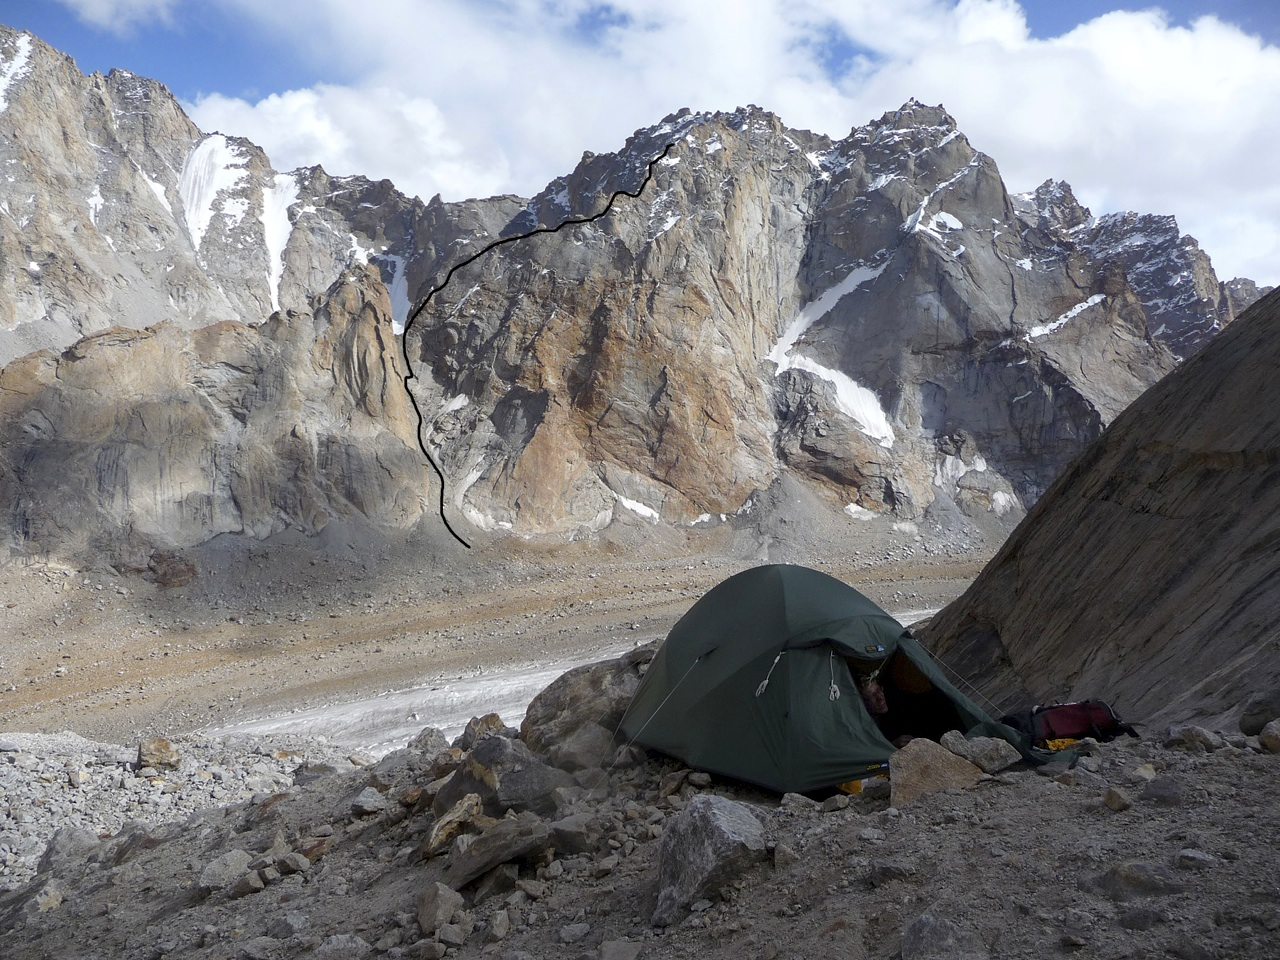 Camp at 5,300m below east gully of Lama Jimsa Kangri. Tetleh Glacier below and approximate line of attempted route on Peak ca 5,700m, a subsidiary summit of R13, marked. Johnny Bull